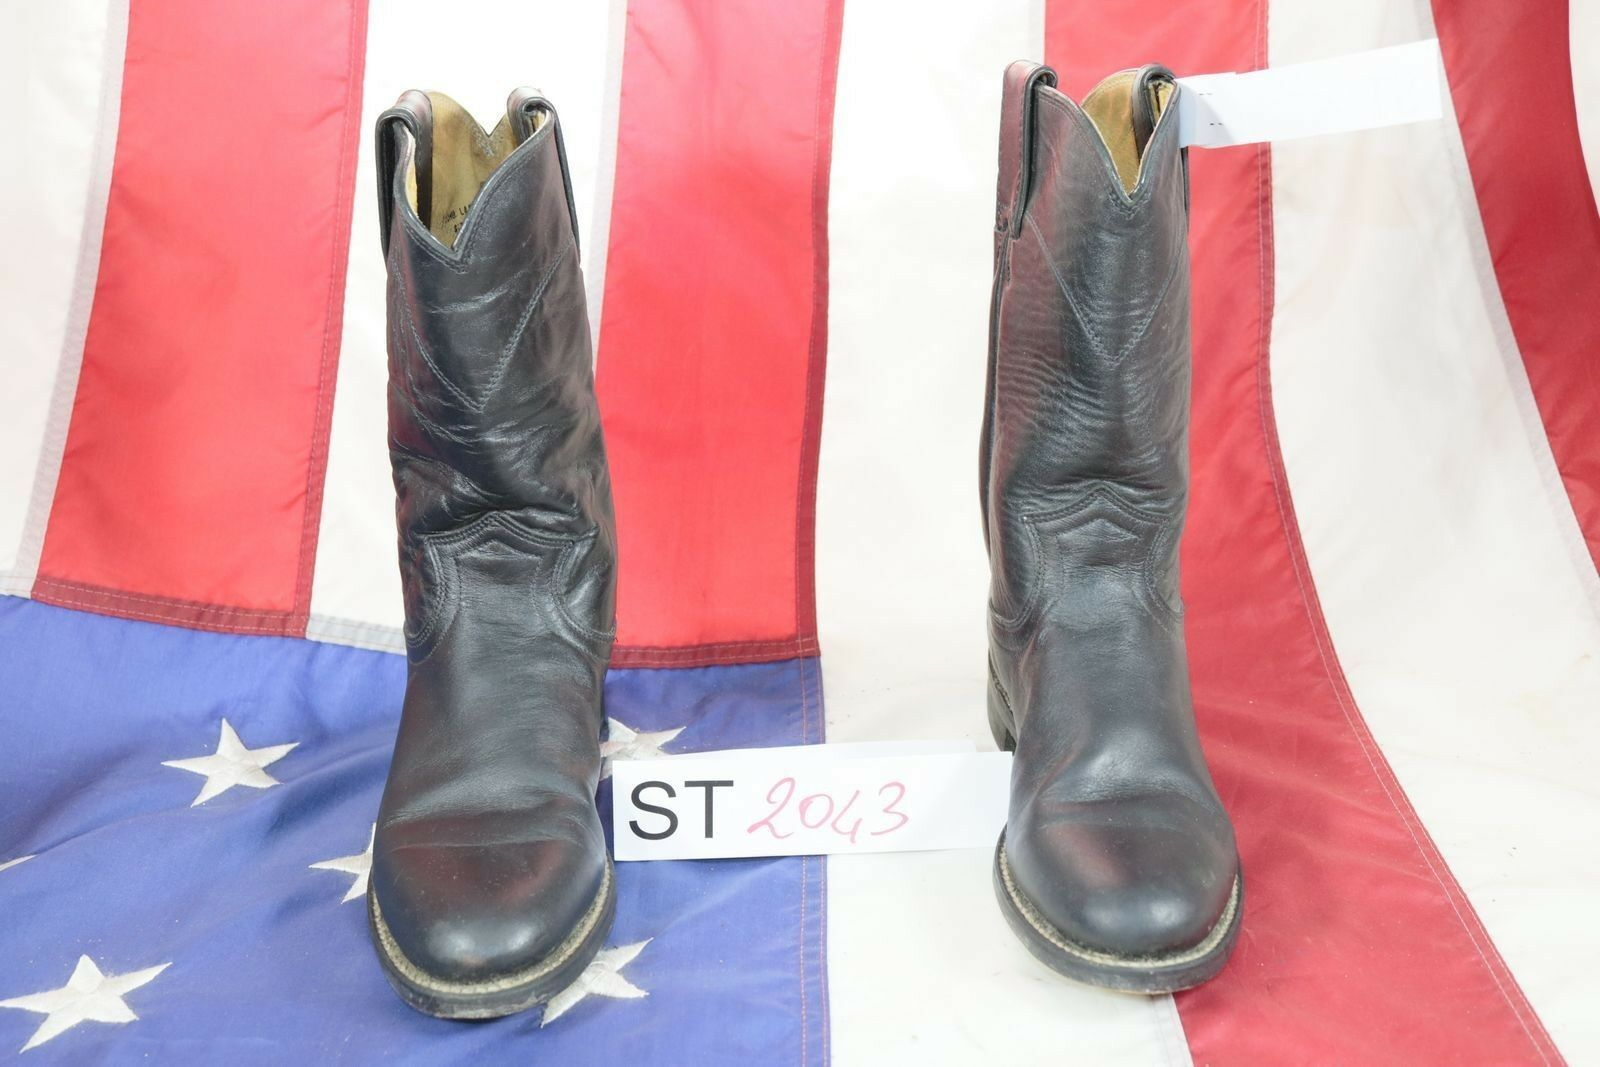 botas JUSTIN (Cod. ST2043) ST2043) ST2043) USATO N.6b mujer Pelle  marrón texani country  ahorre 60% de descuento